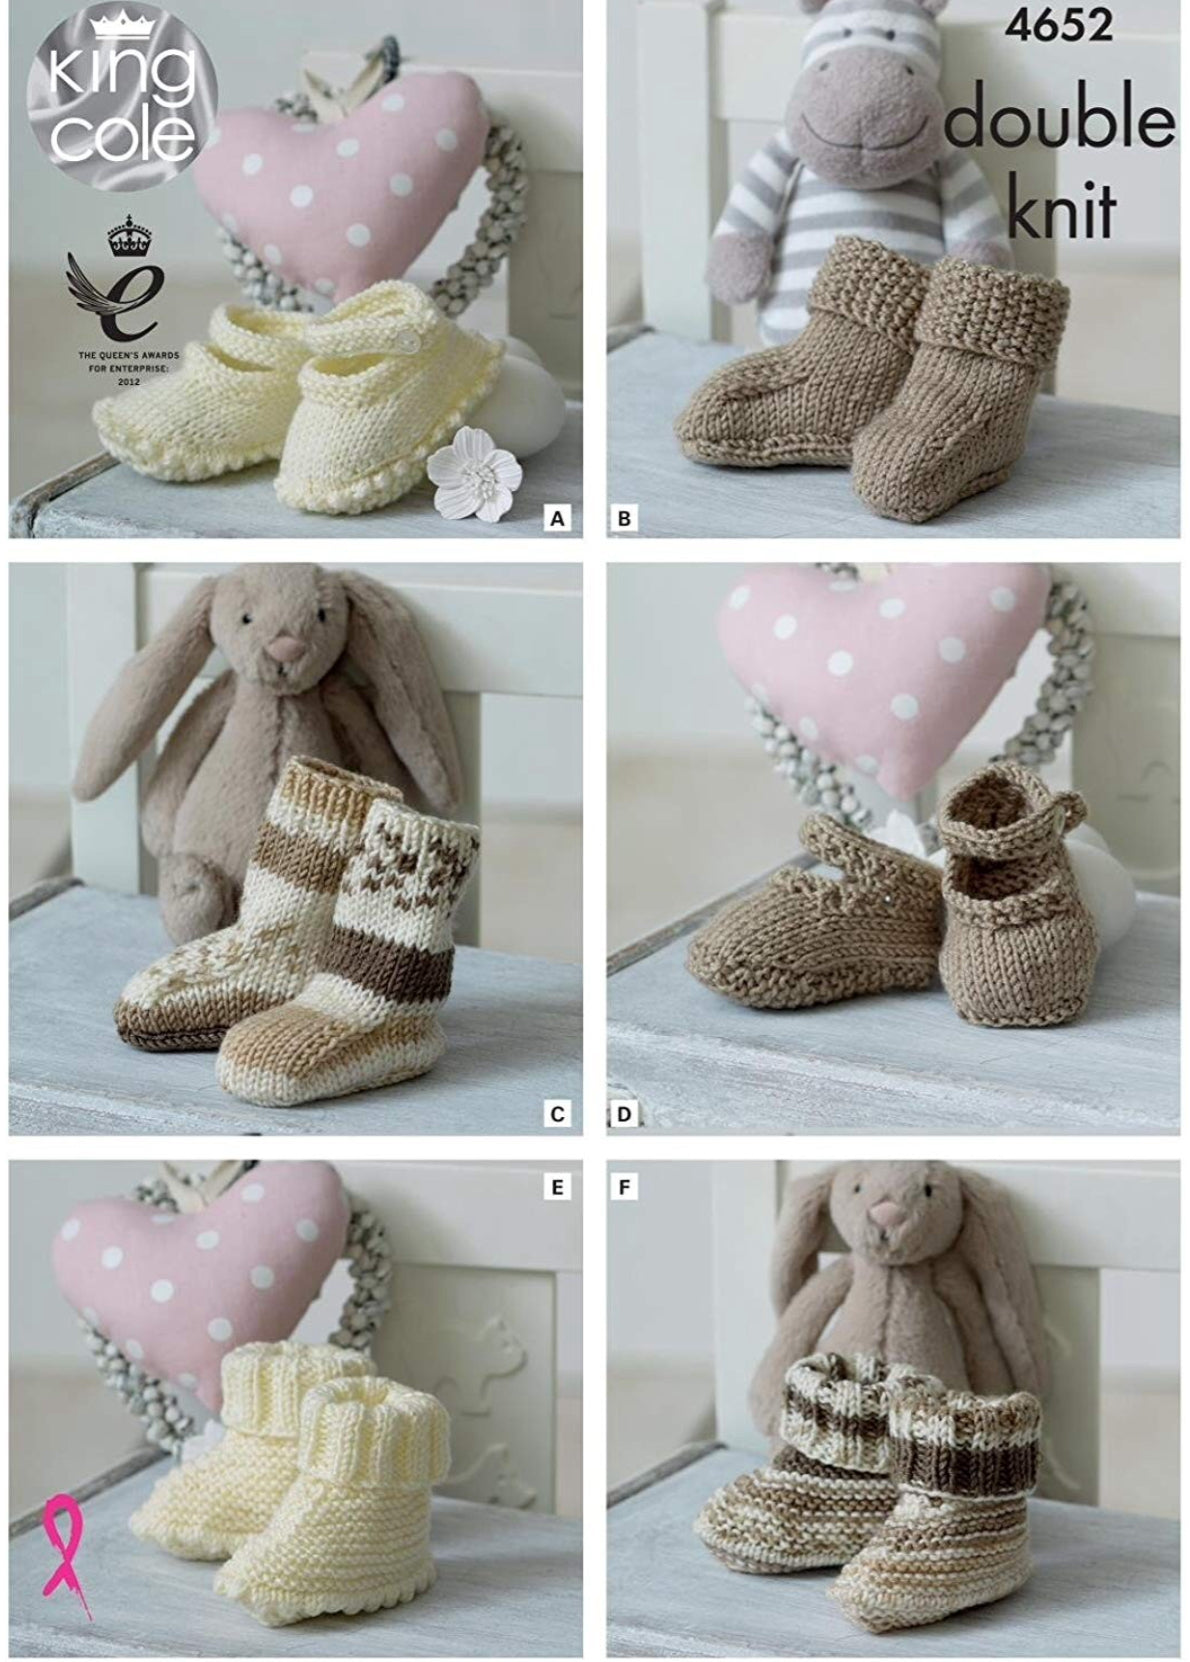 King Cole 4652 Baby Socks, Booties and Shoes in Cherish and Cherished DK